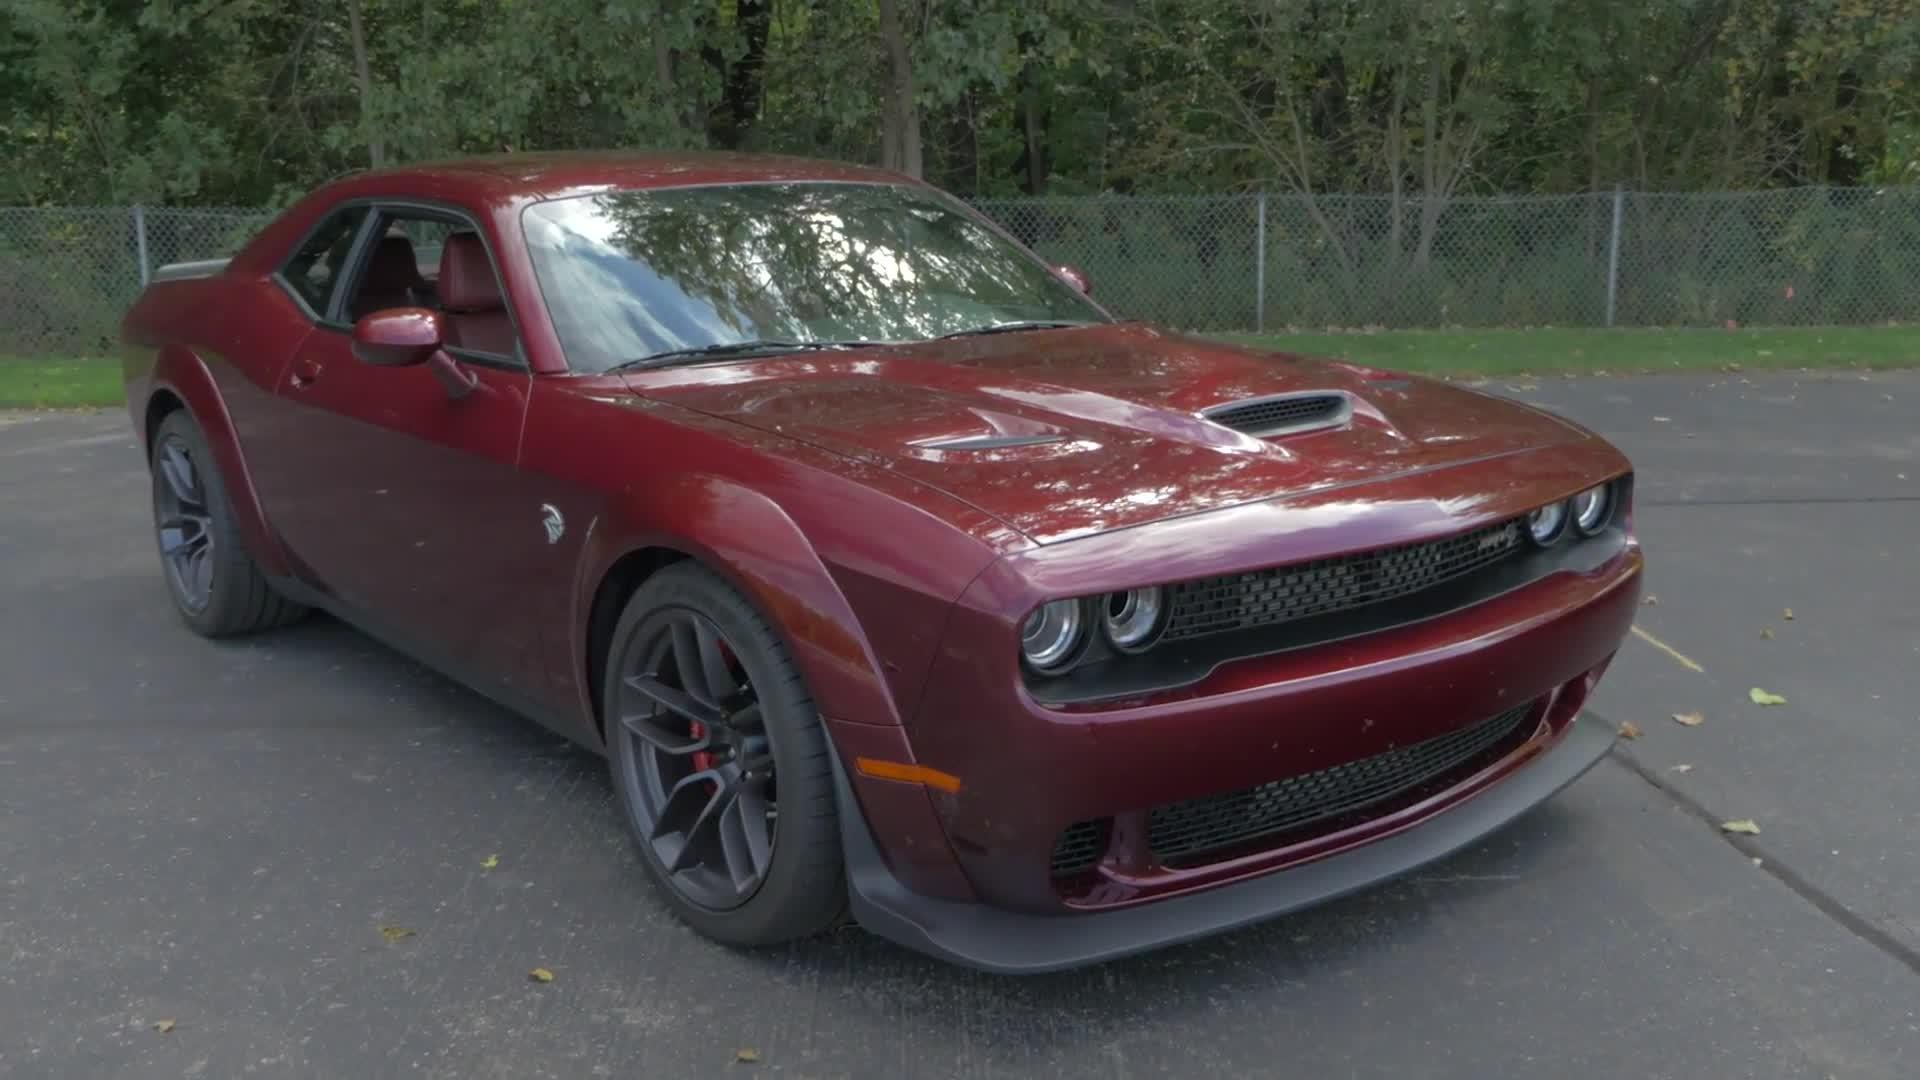 coupe new west challenger in shaker rwd inventory scat hemi dodge pack